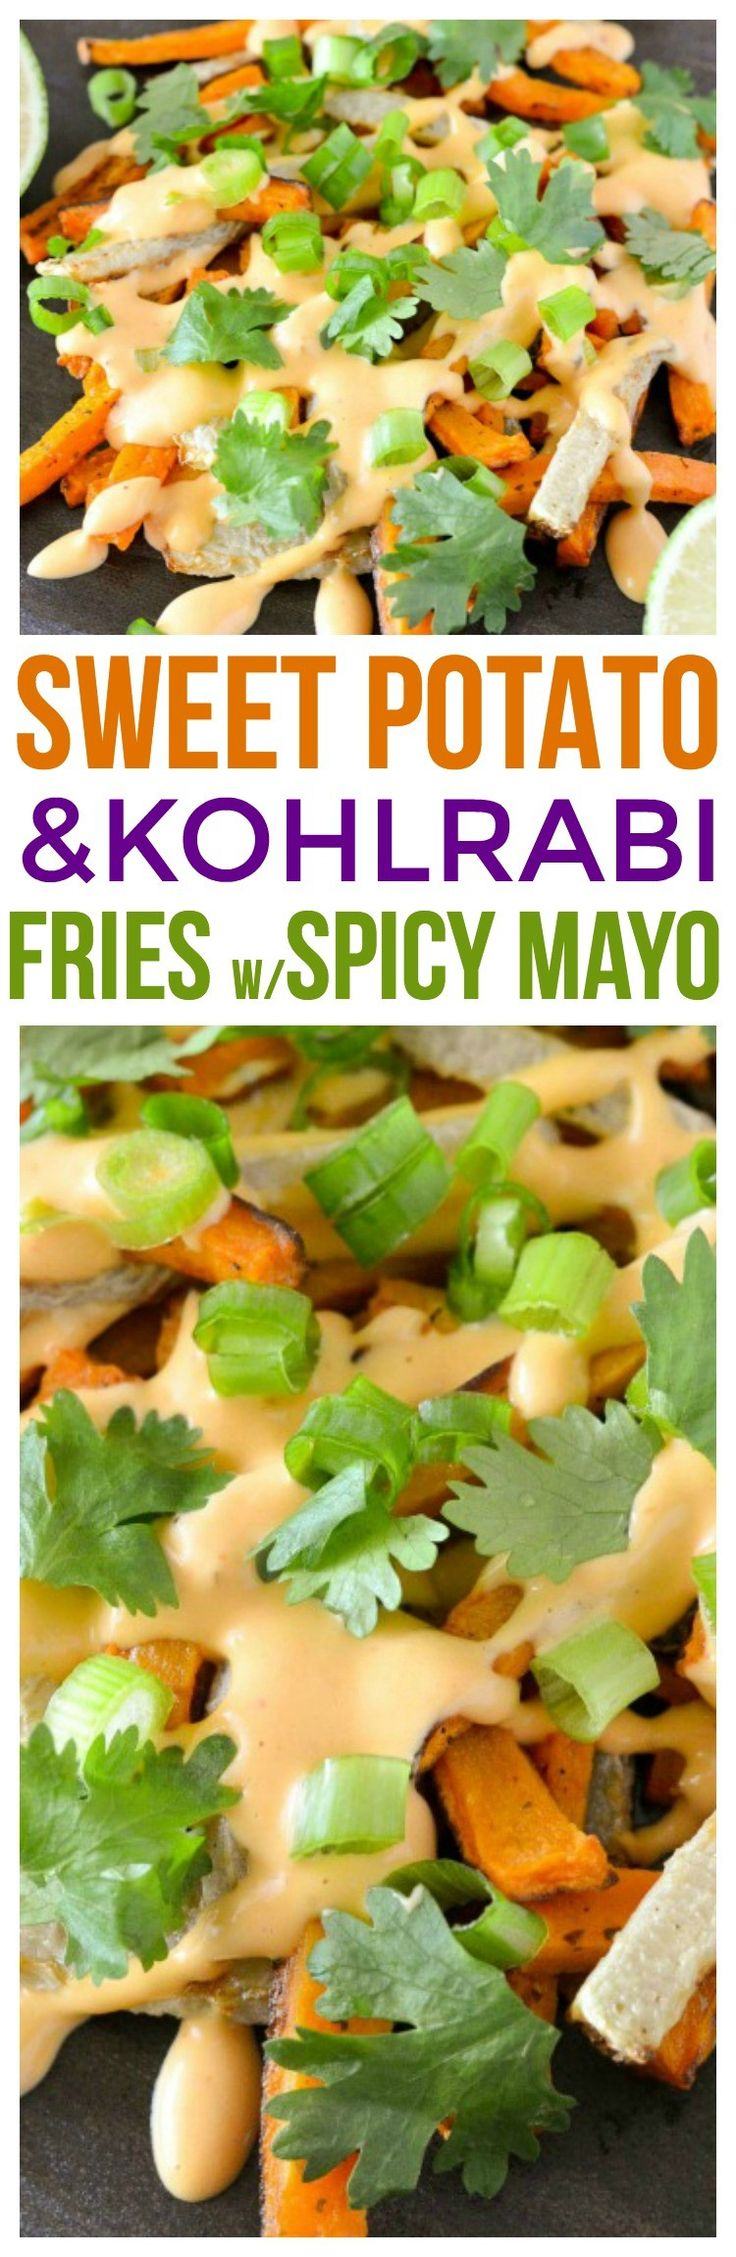 Make this tasty recipe of sweet potato fries baked and kohlrabi fries! we pair it with a homemade spicy mayo recipe and this is a great way to use kohlrabi if you're looking for kohlrabi recipes.  via @KnowYourProduce